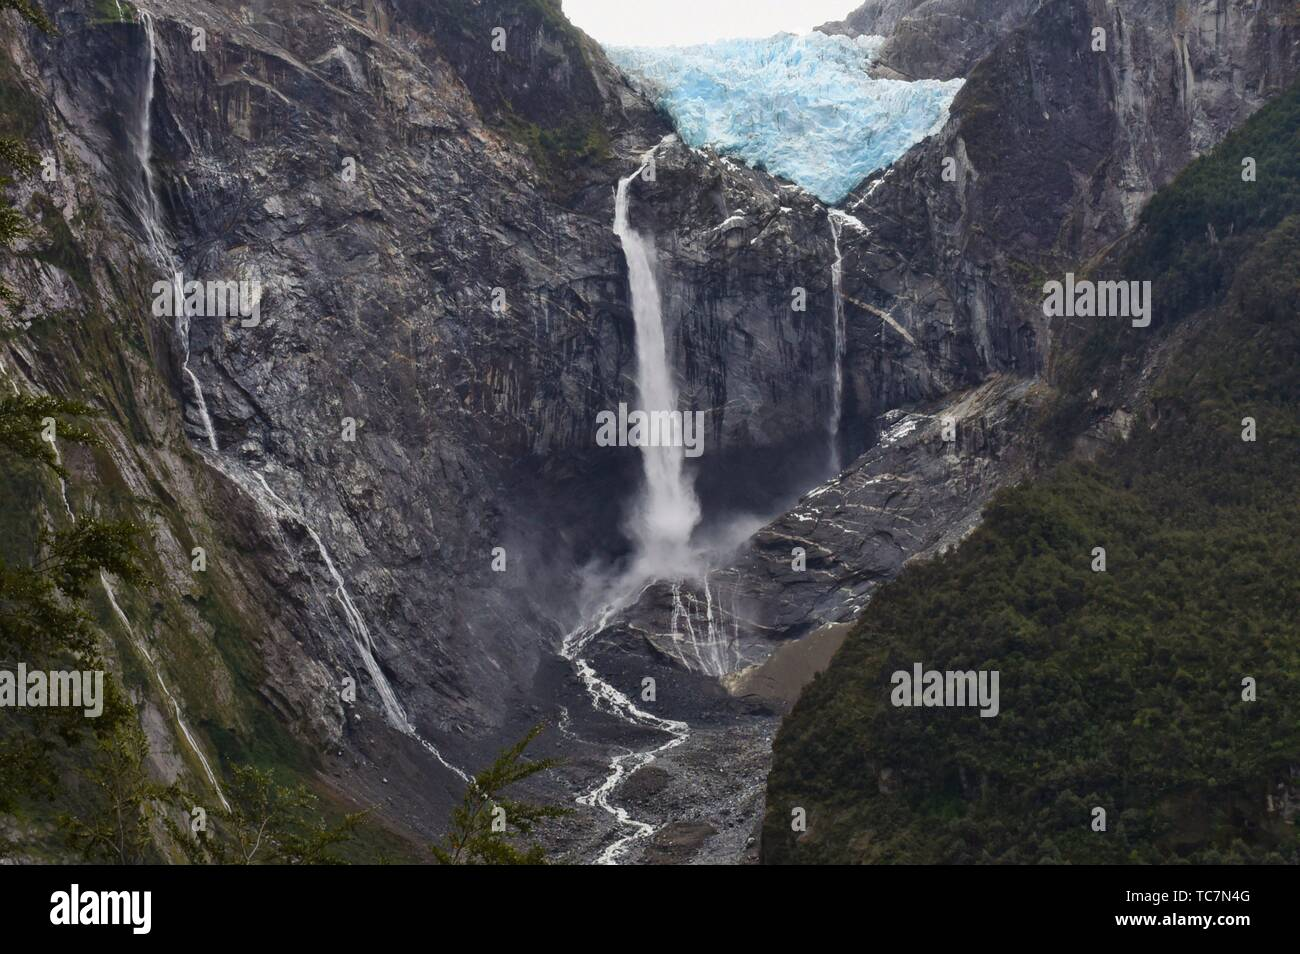 Ventisquero Colgante hanging glacier in Queulat National Park, Patagonia, Aysen, Chile. Stock Photo